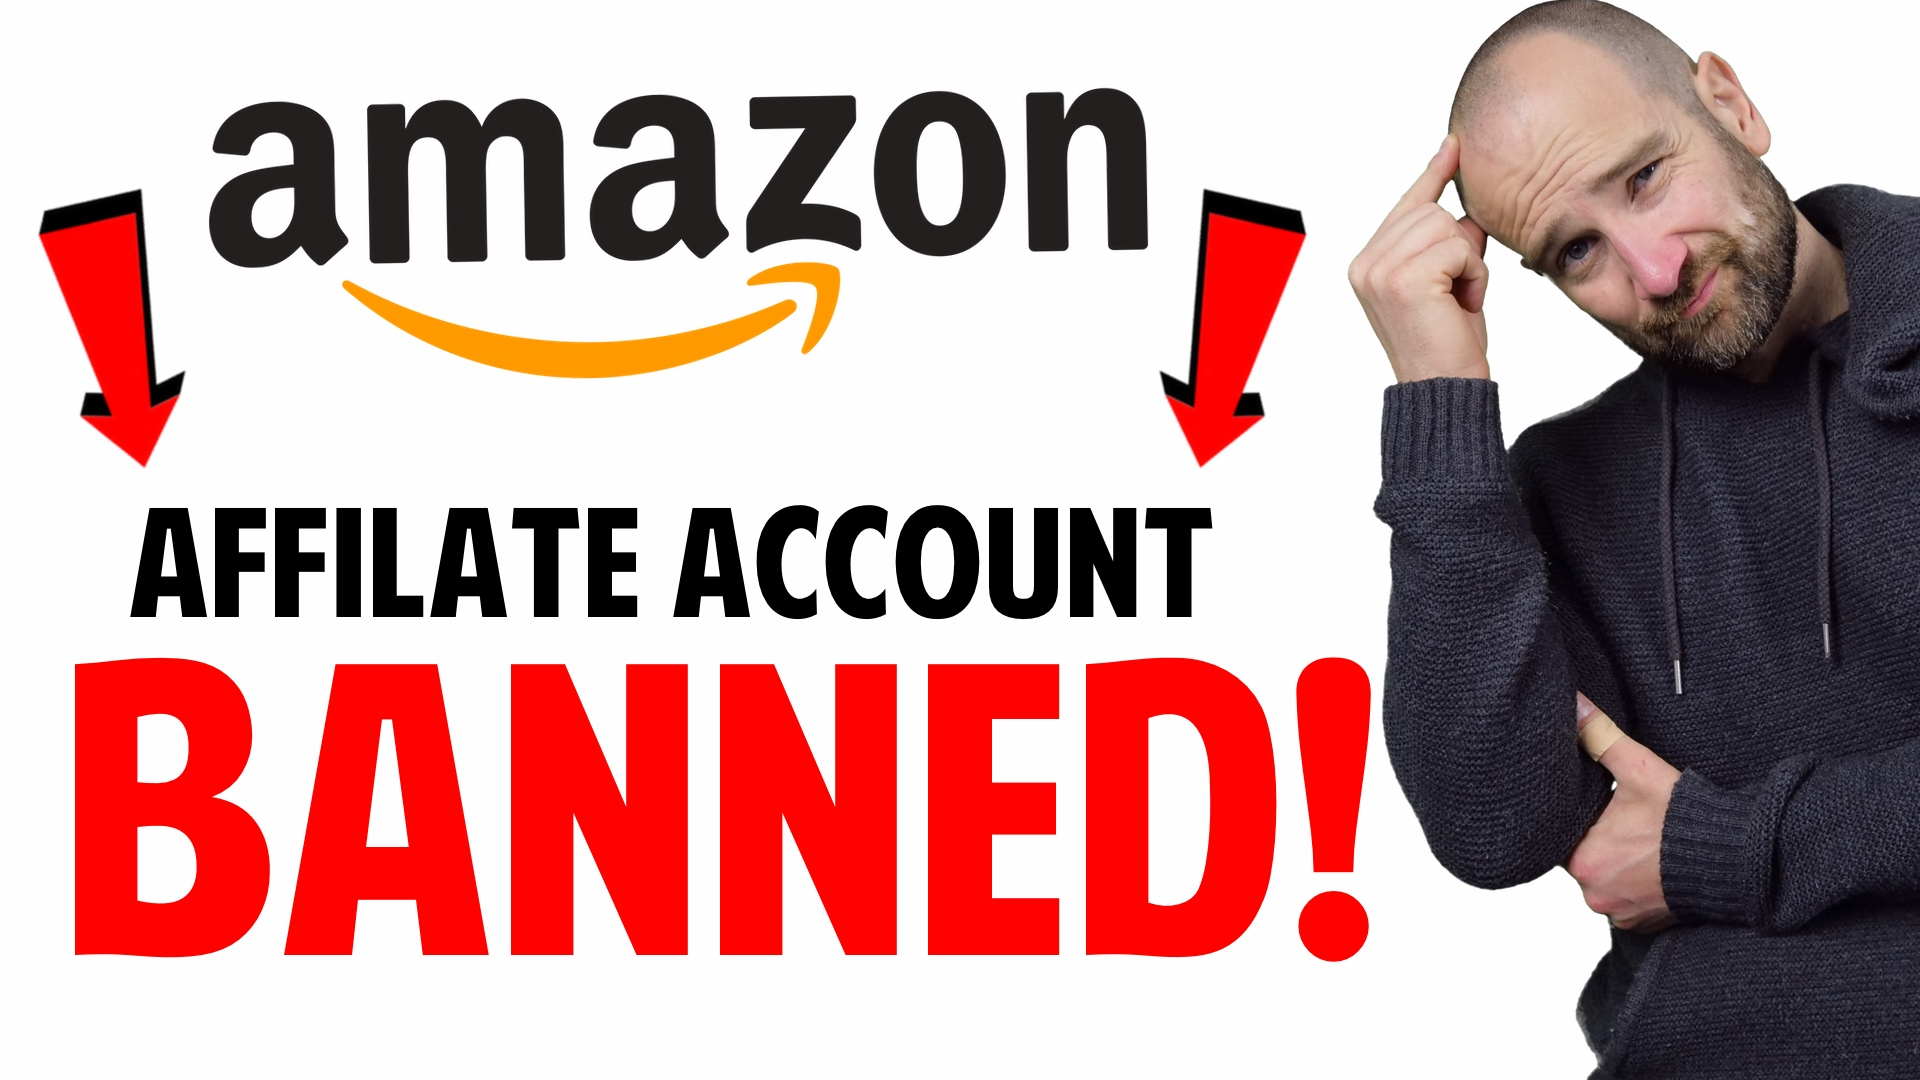 Amazon Audible Affiliate So Your Amazon Affiliate Account Was Banned Geeky Nerdy Techy